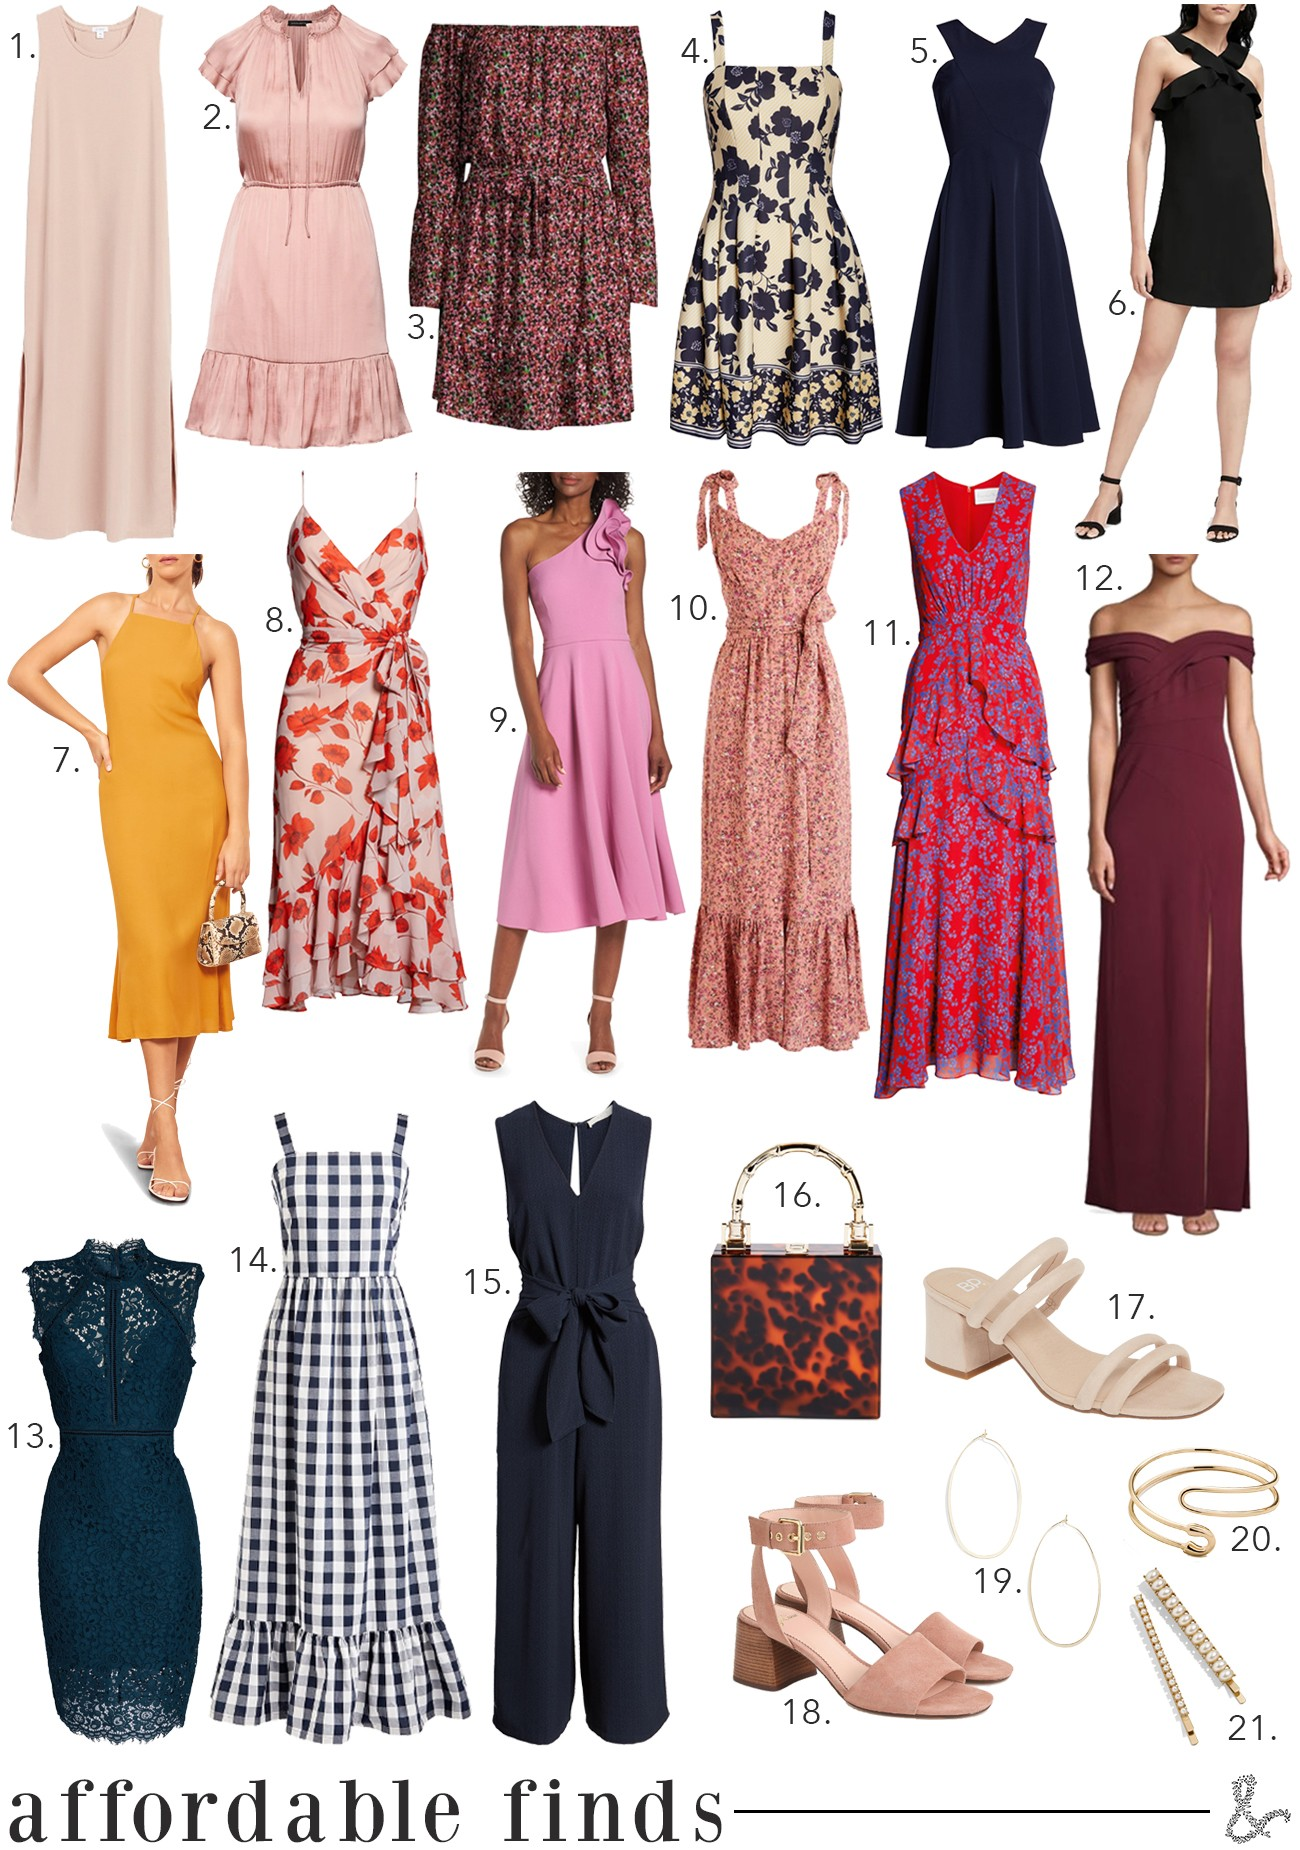 Affordable Wedding Guest Outfit Ideas Wit Whimsy,Martina Liana Wedding Dress Prices Uk